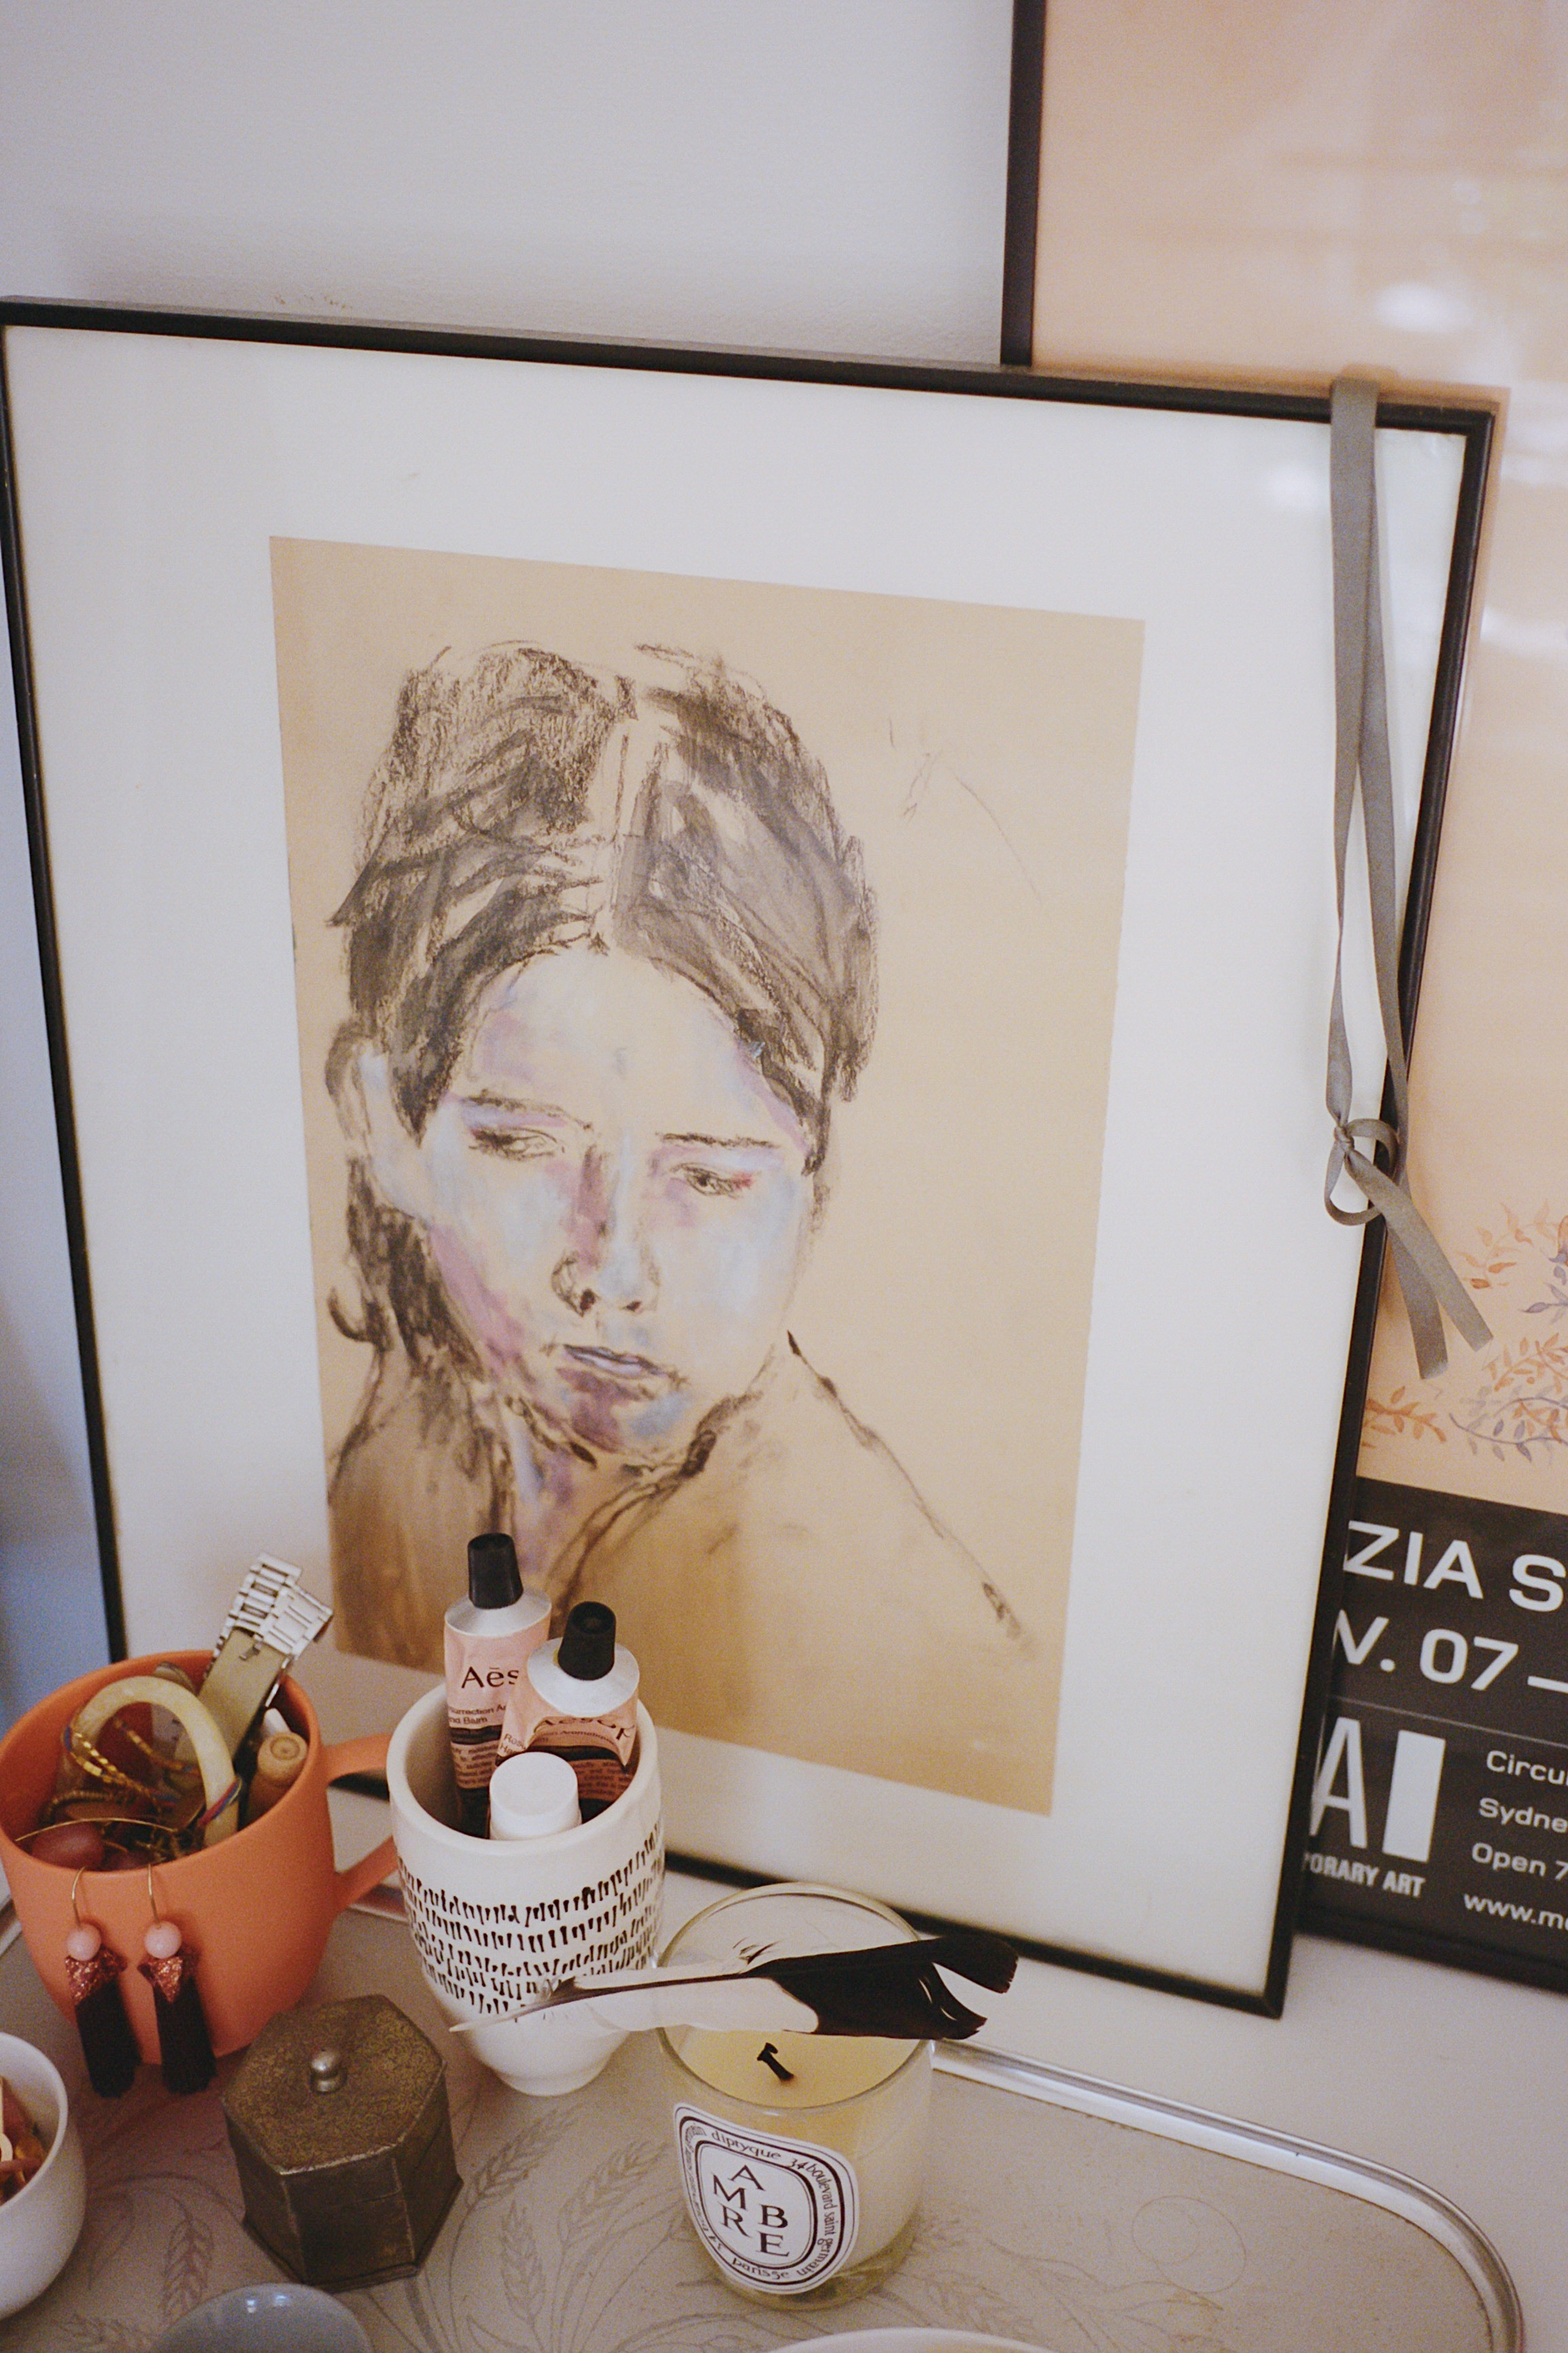 All images by Elize Strydom